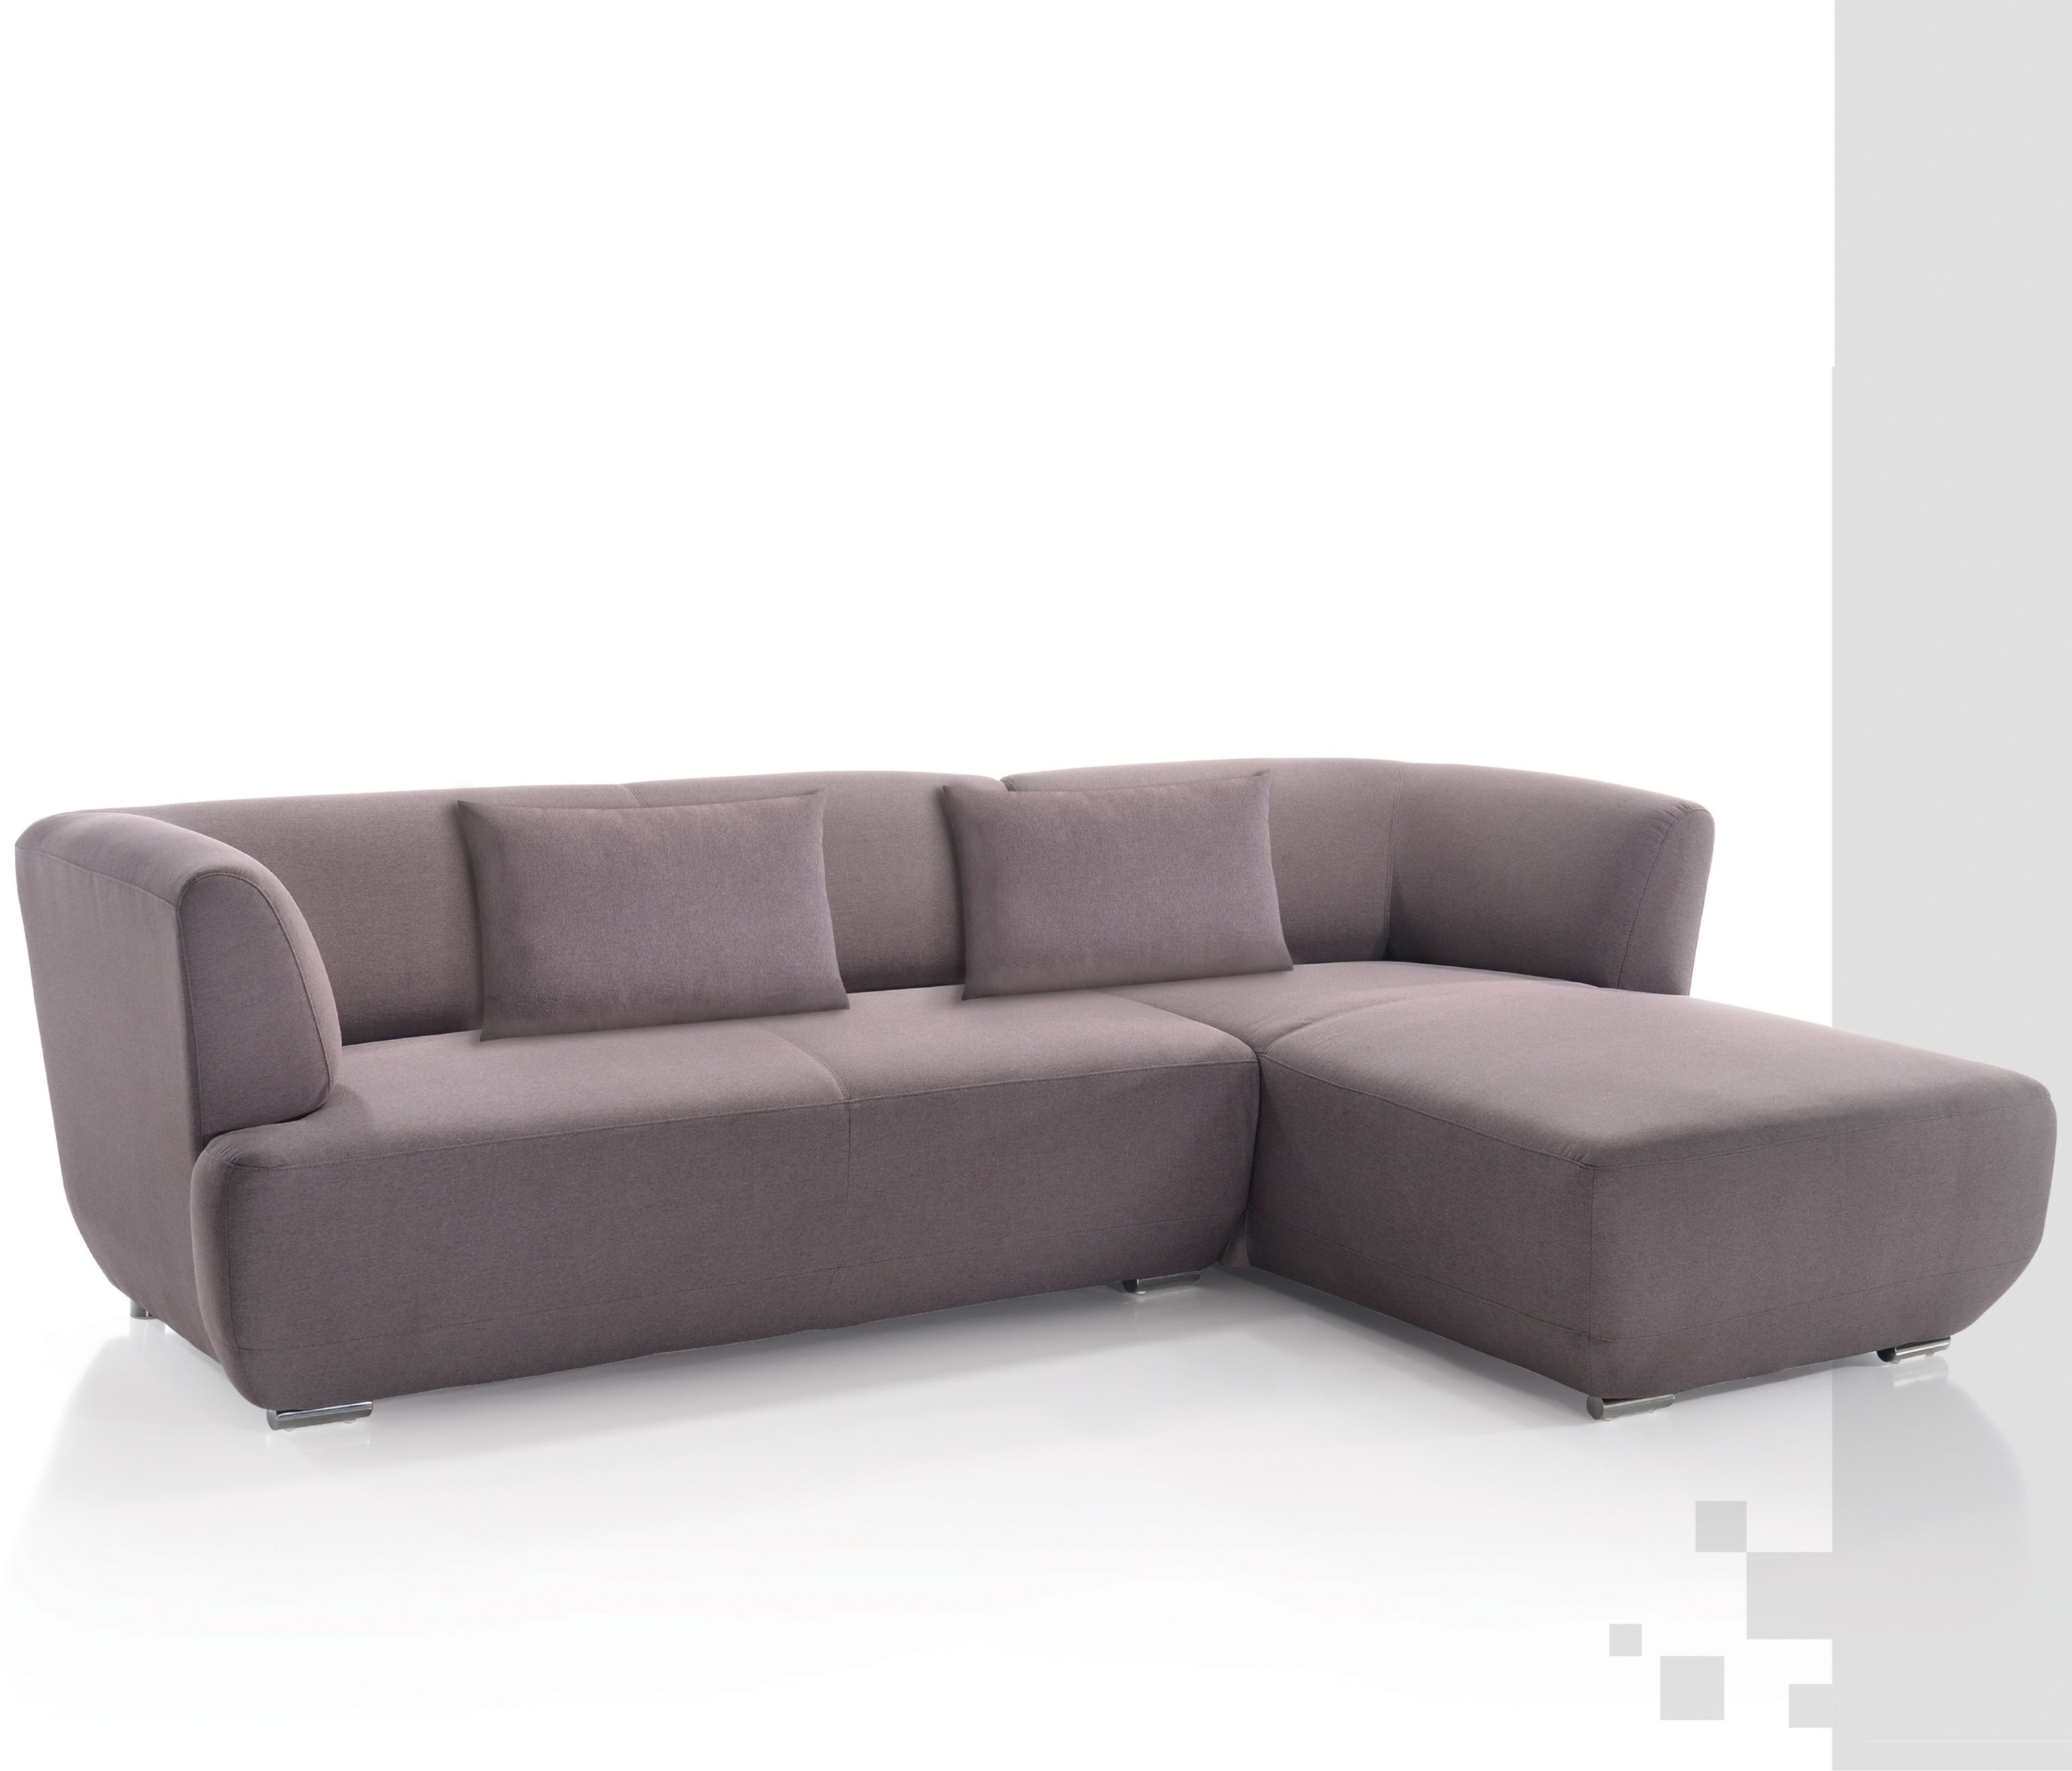 Sofa Sofa Bed Portfolio categories GUB – All The Best We Have